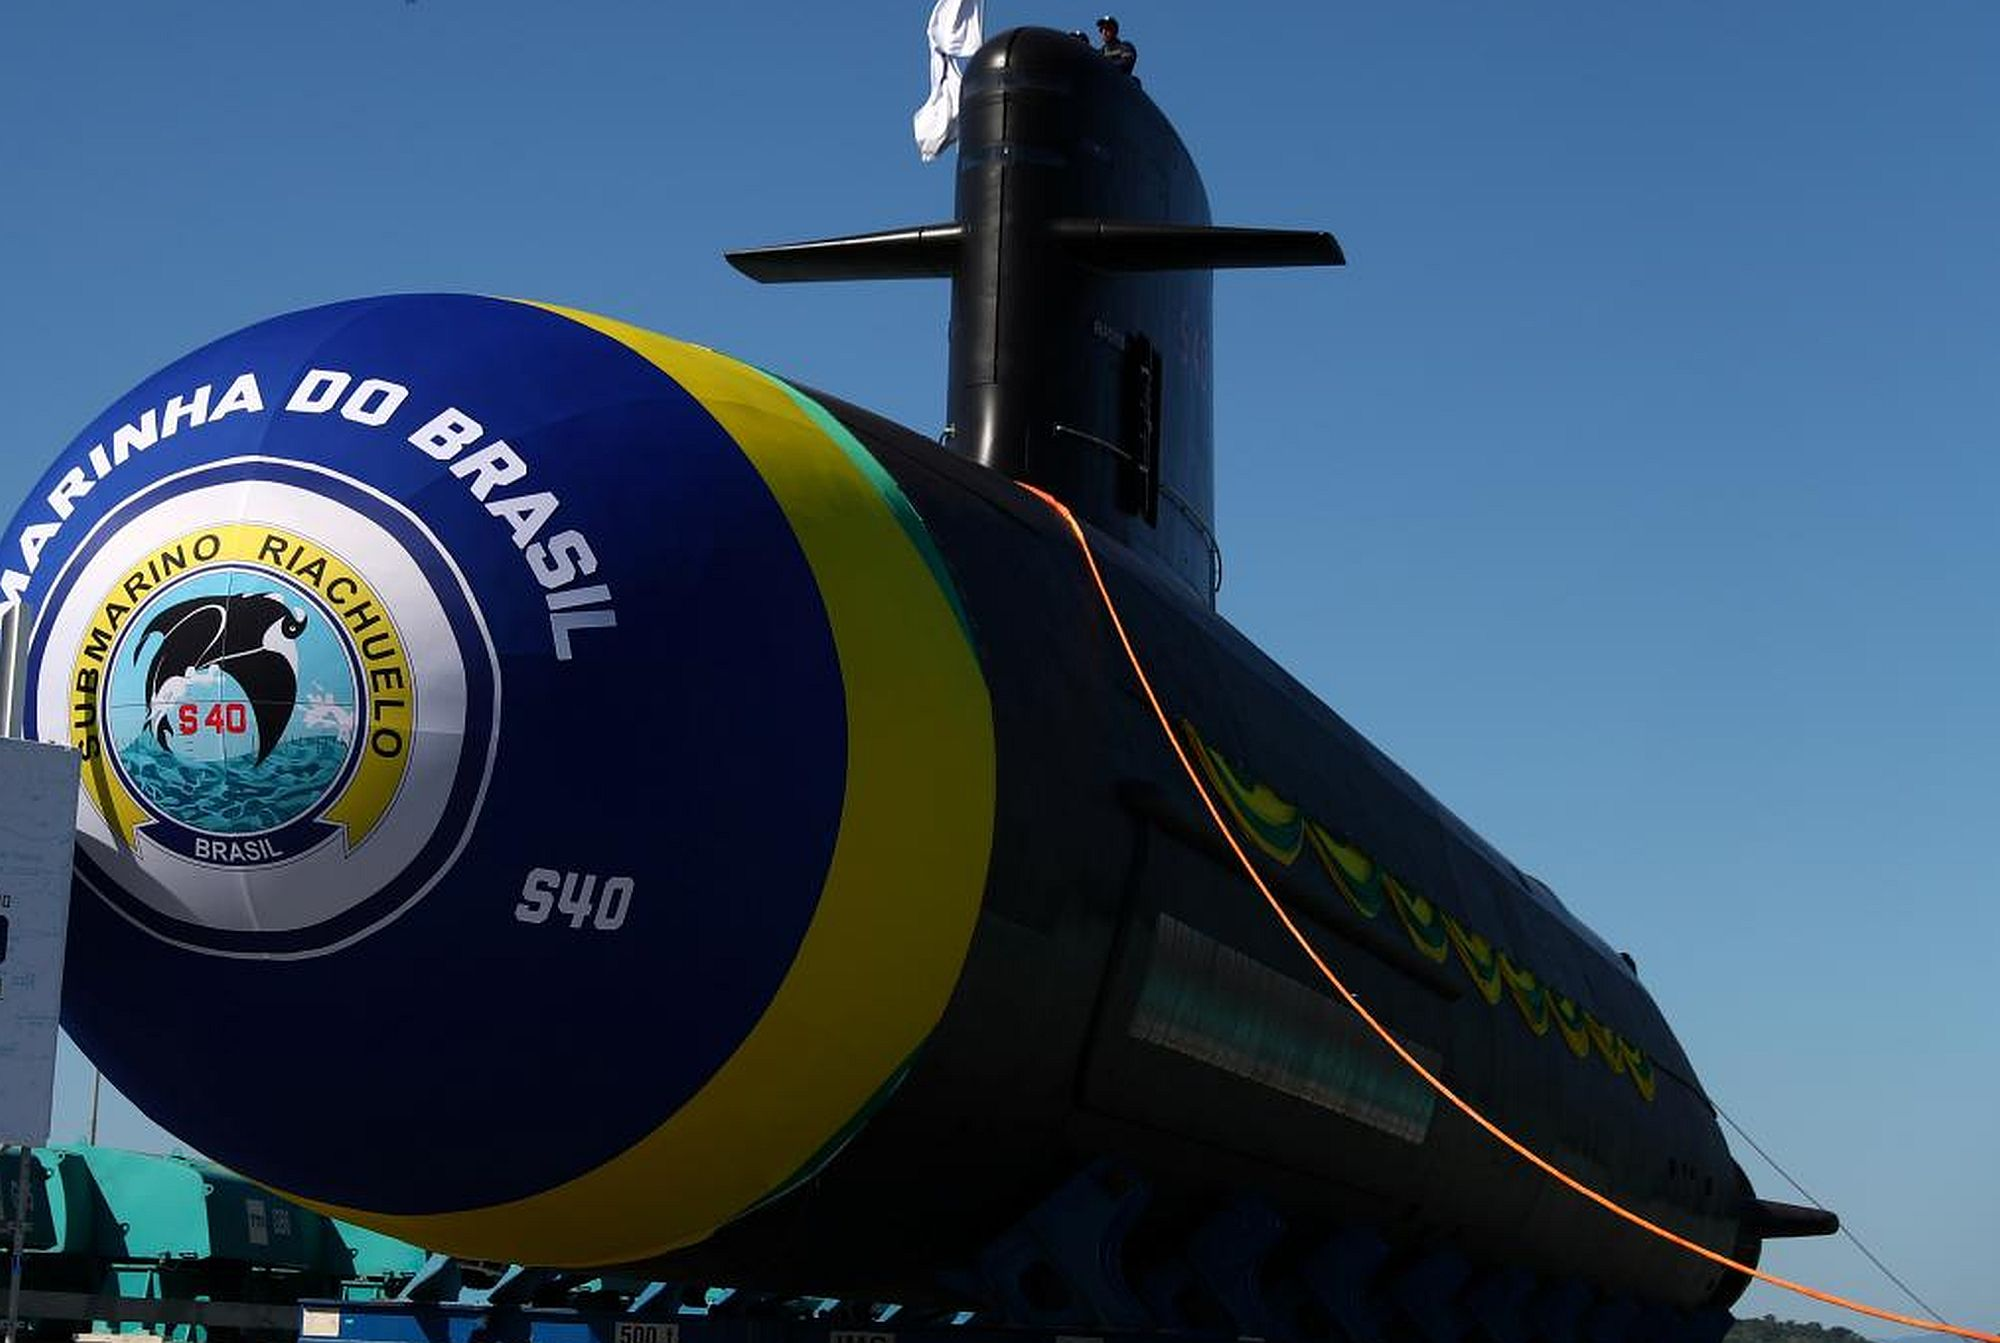 baf56714d The Riachuelo is the first of four conventional submarines Brazil plans to  launch.